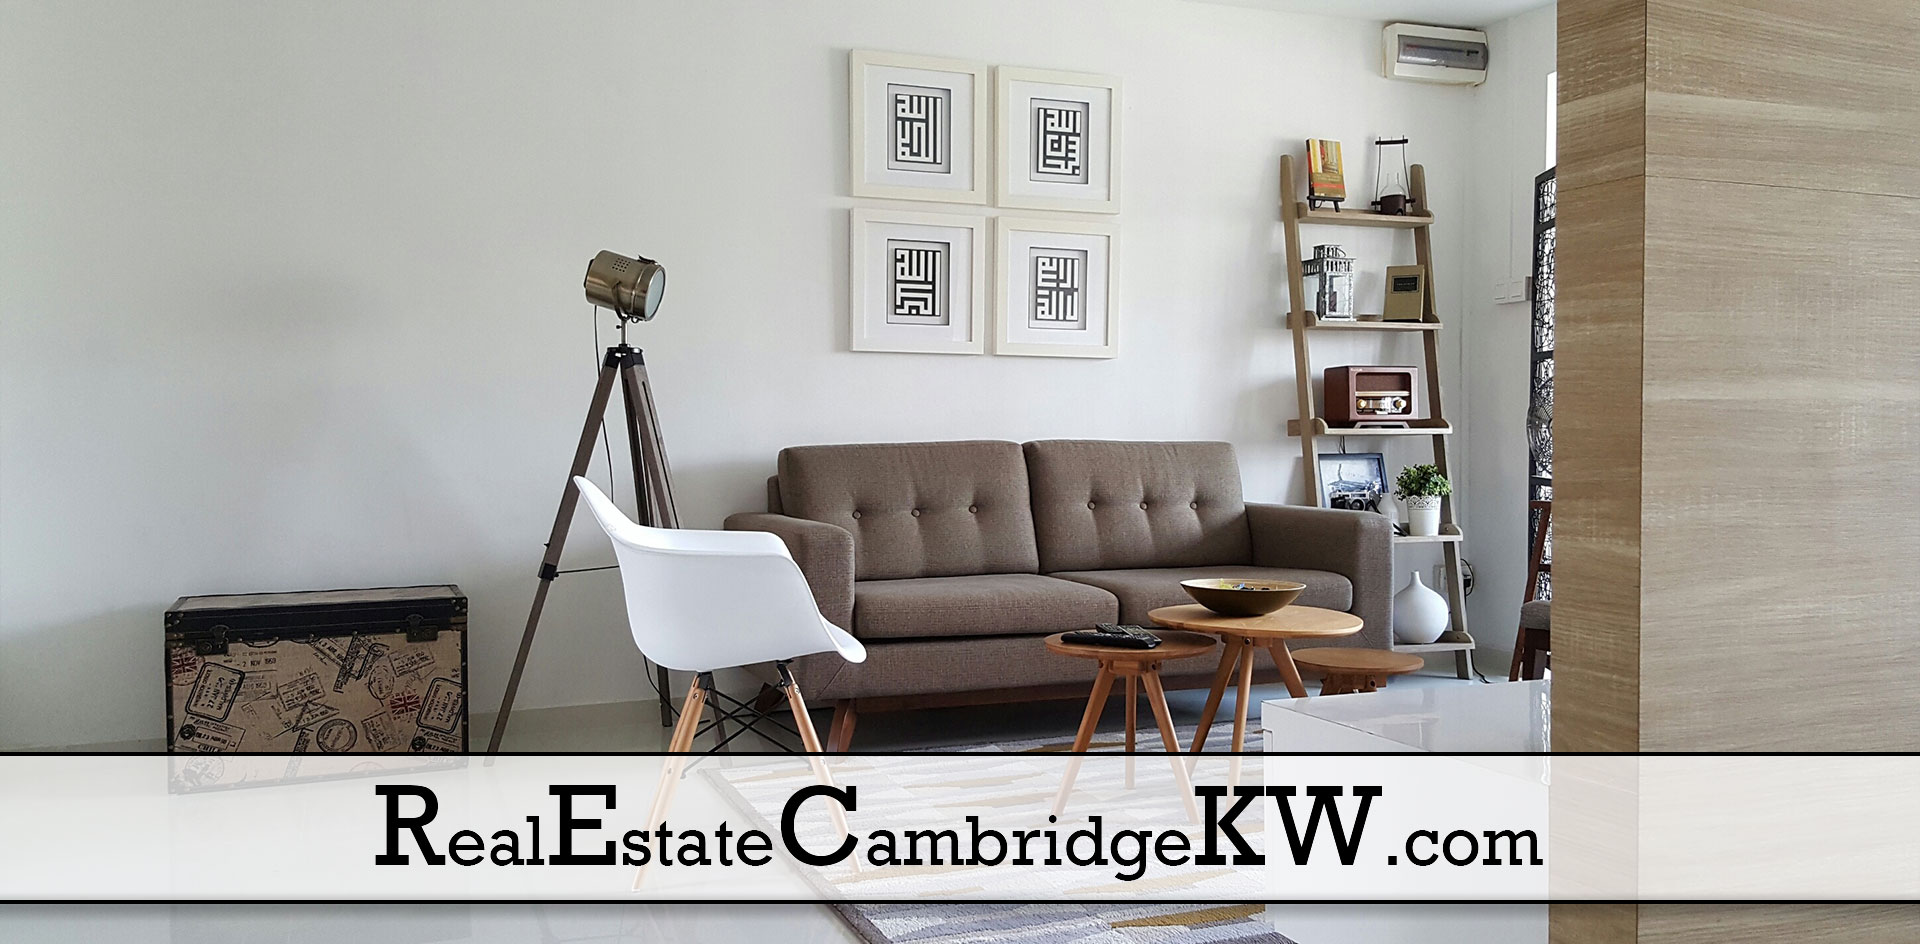 Real Estate Cambridge Banner 4